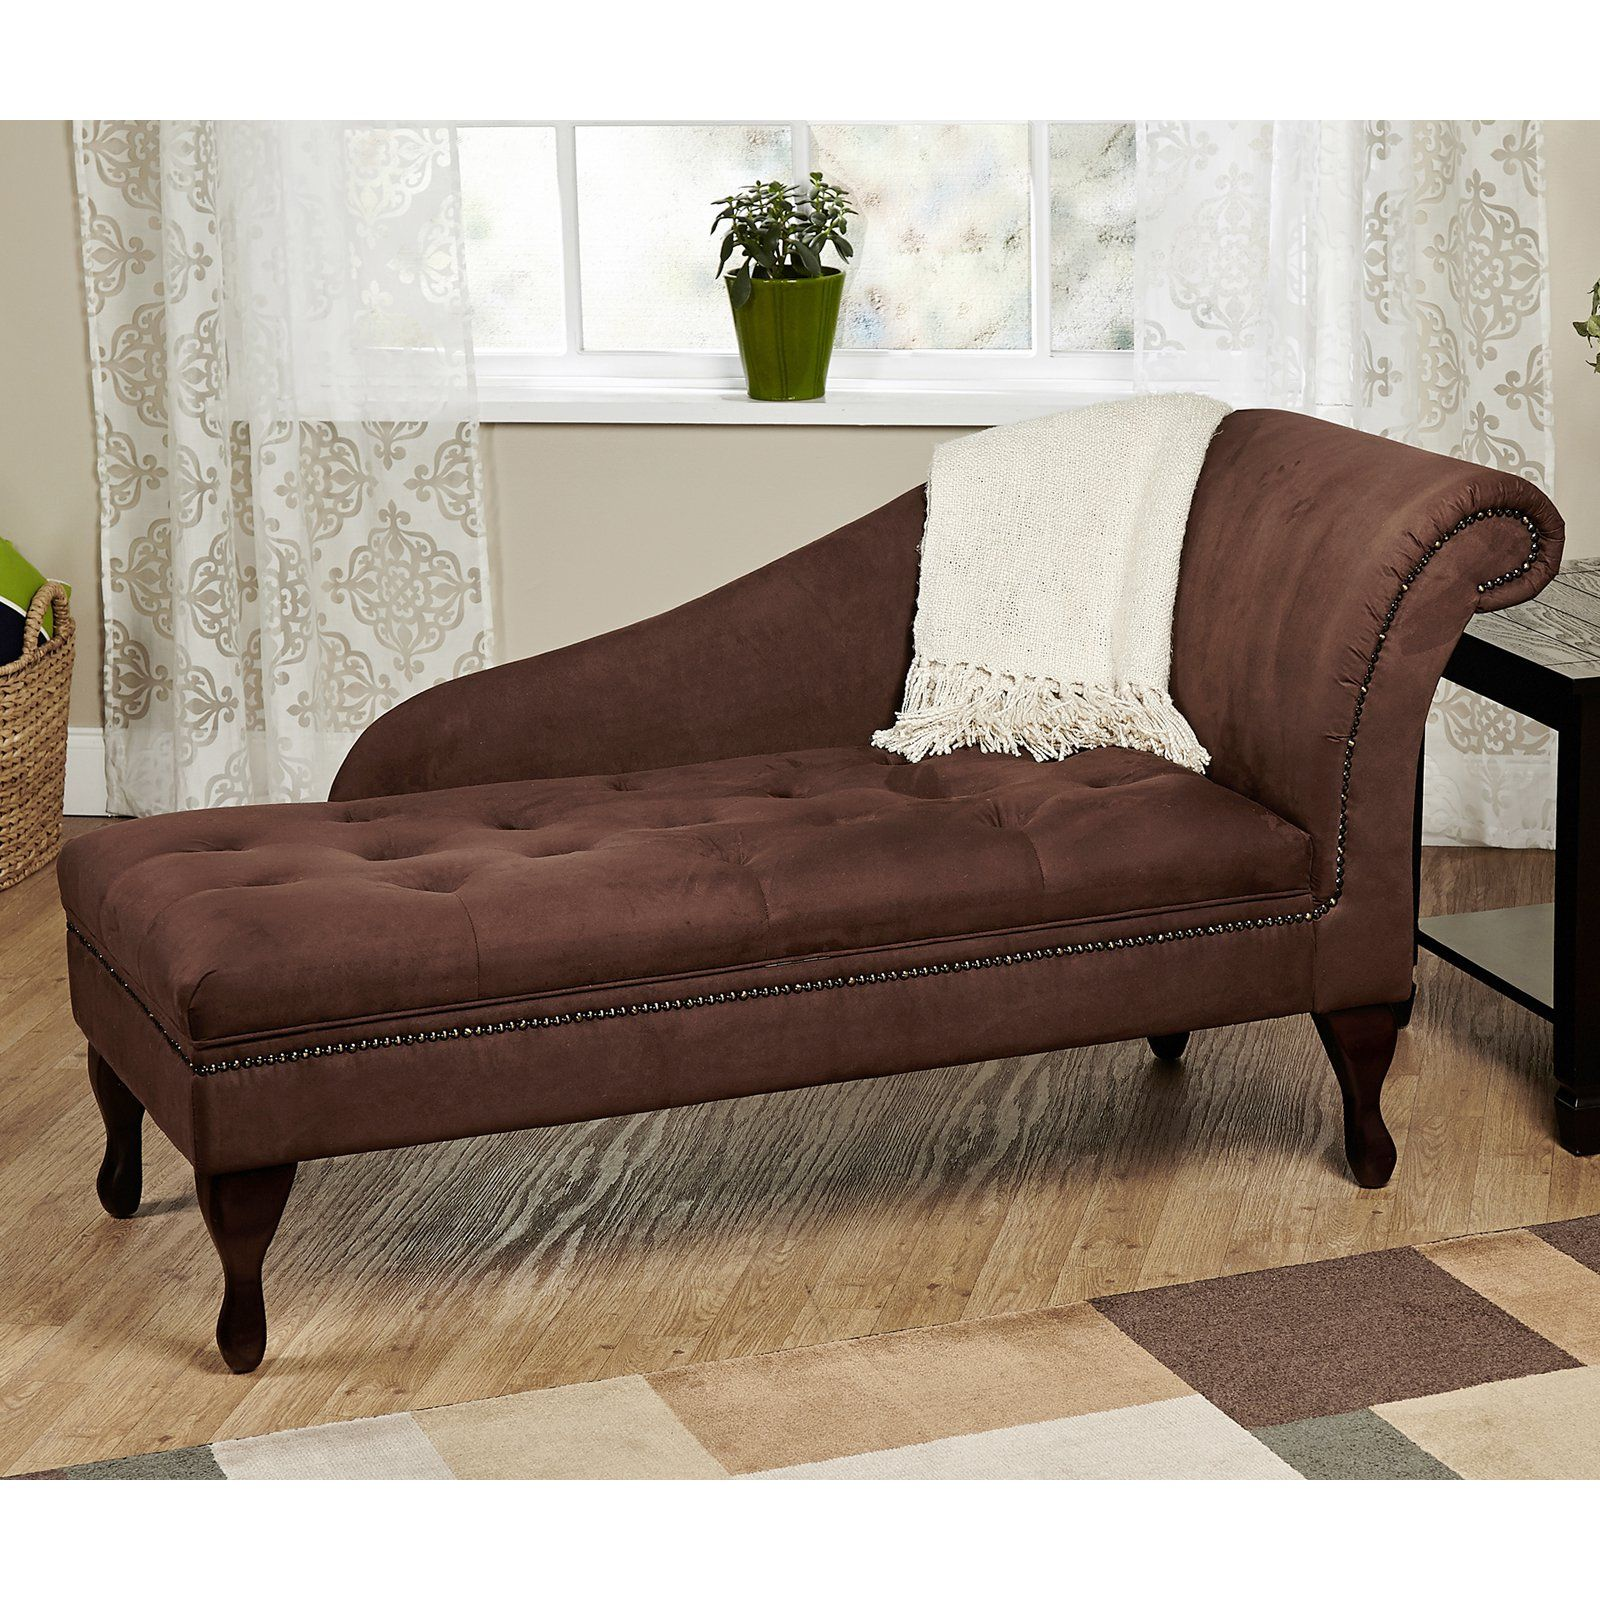 Bb Chs M Sha 0023 Brown Chaise Longue Bespoke The Sofa